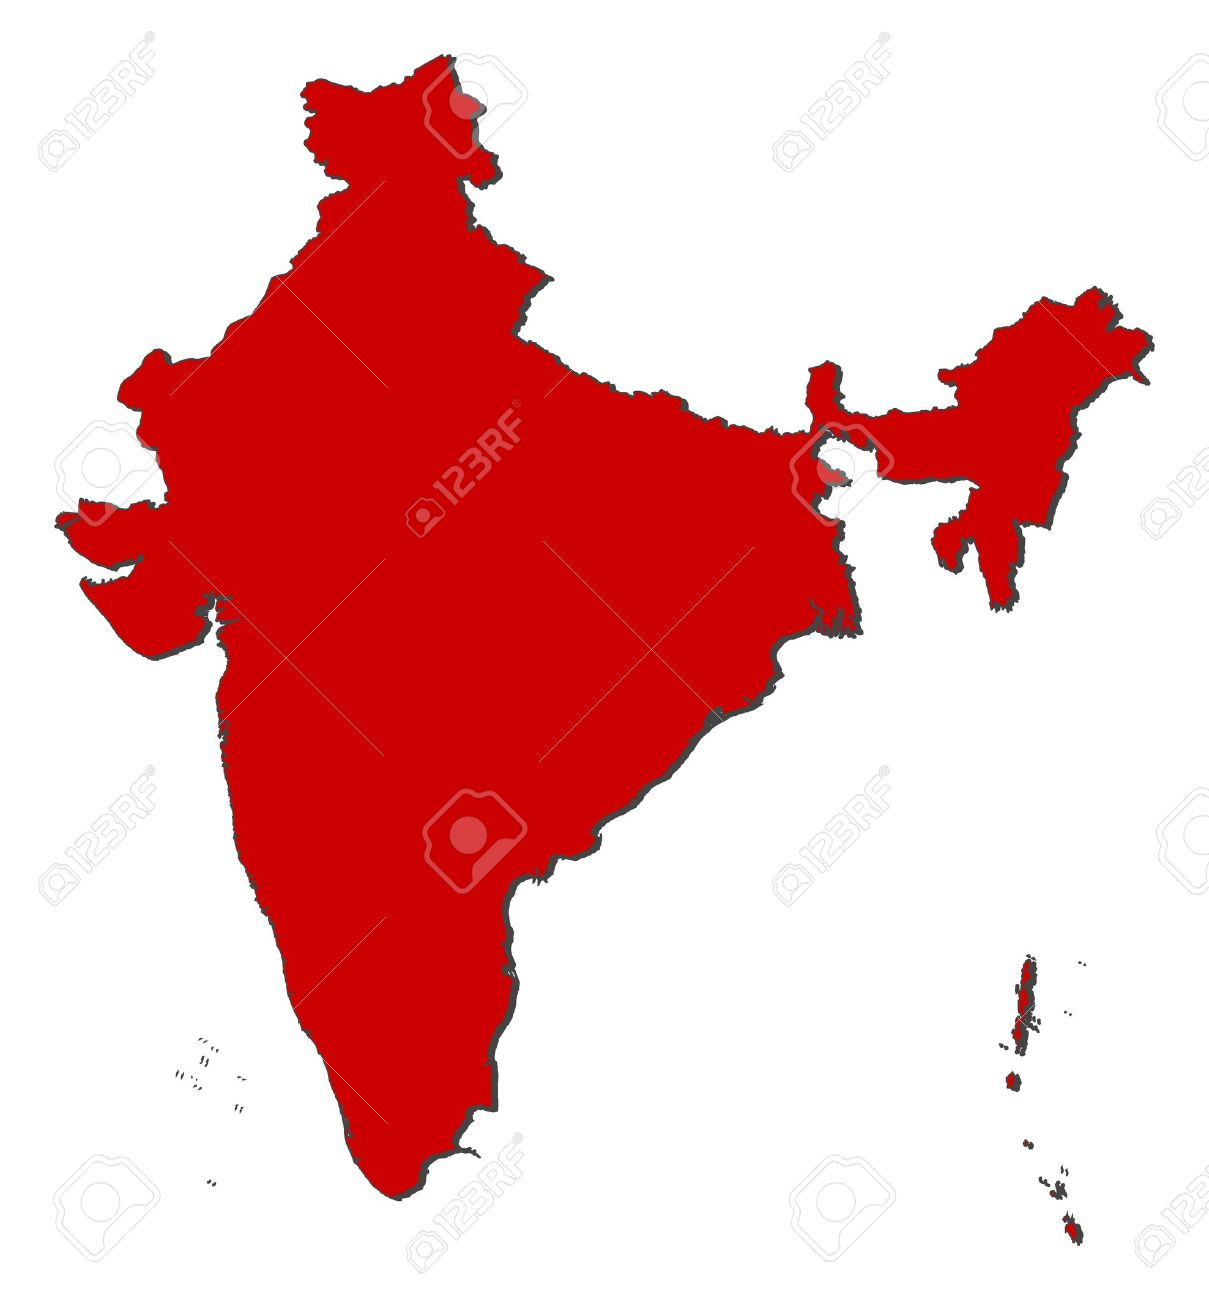 1 228 india map outline cliparts stock vector and royalty free